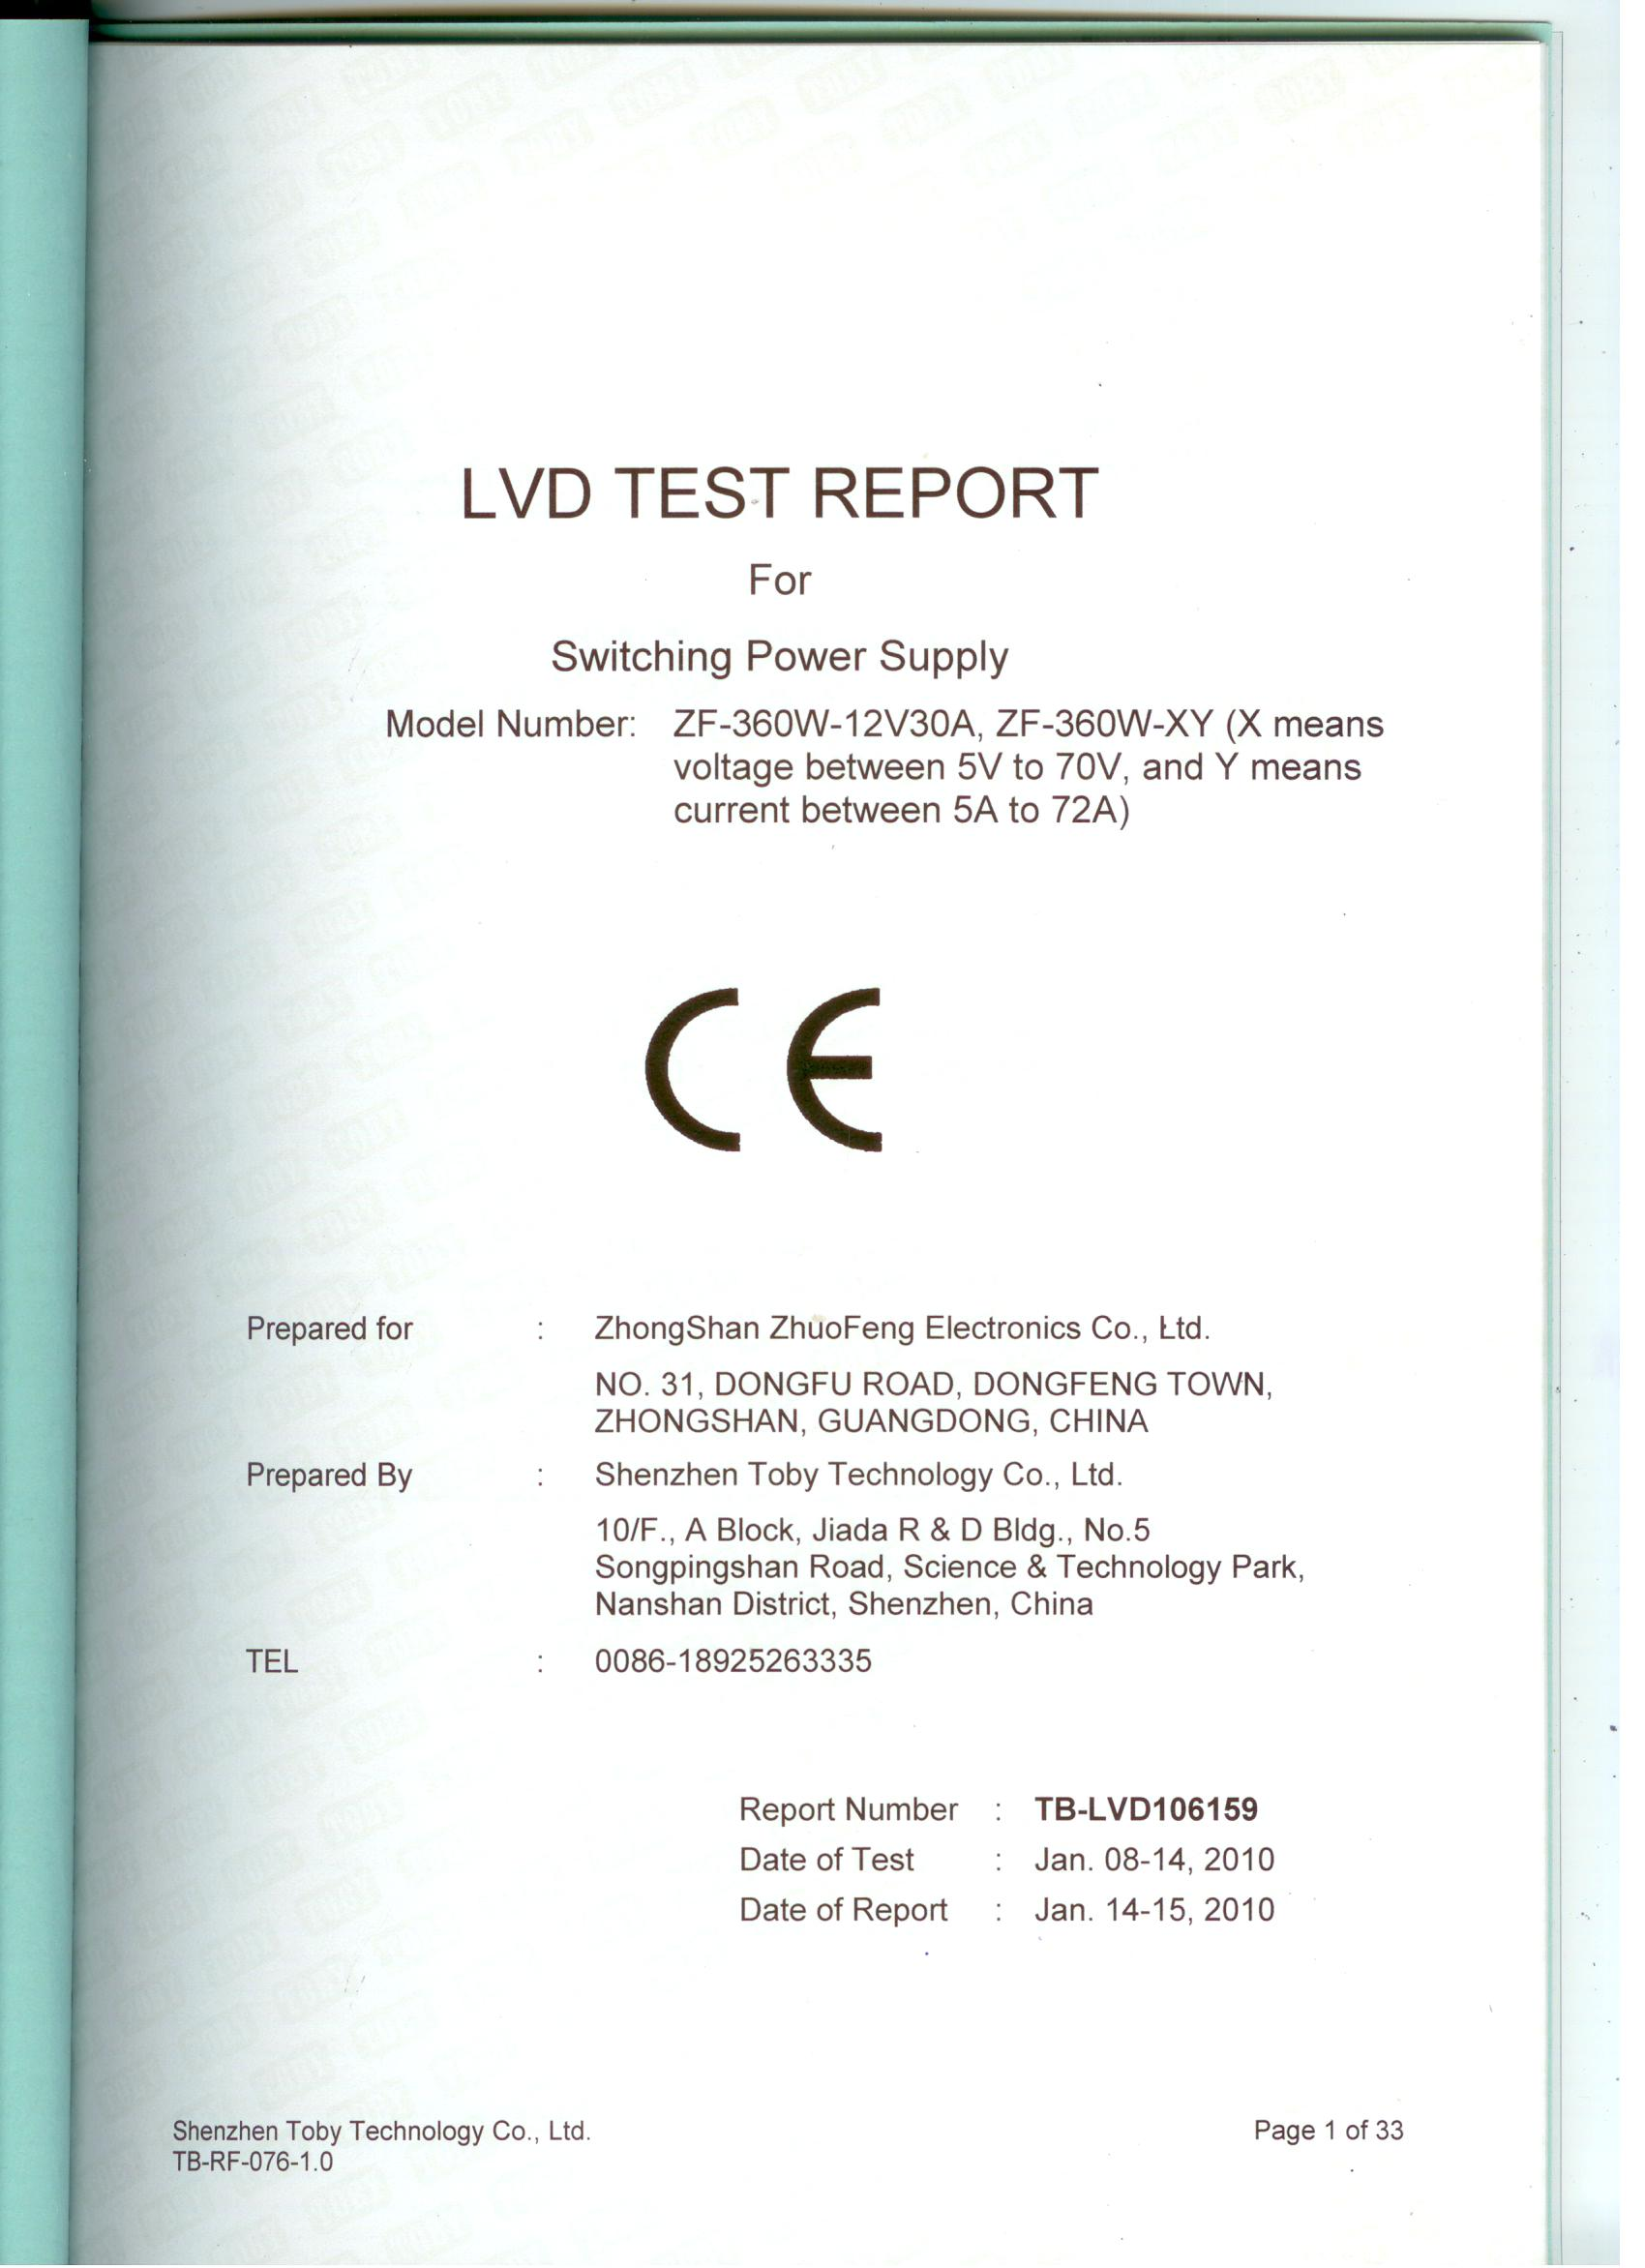 LVD test report for power supply